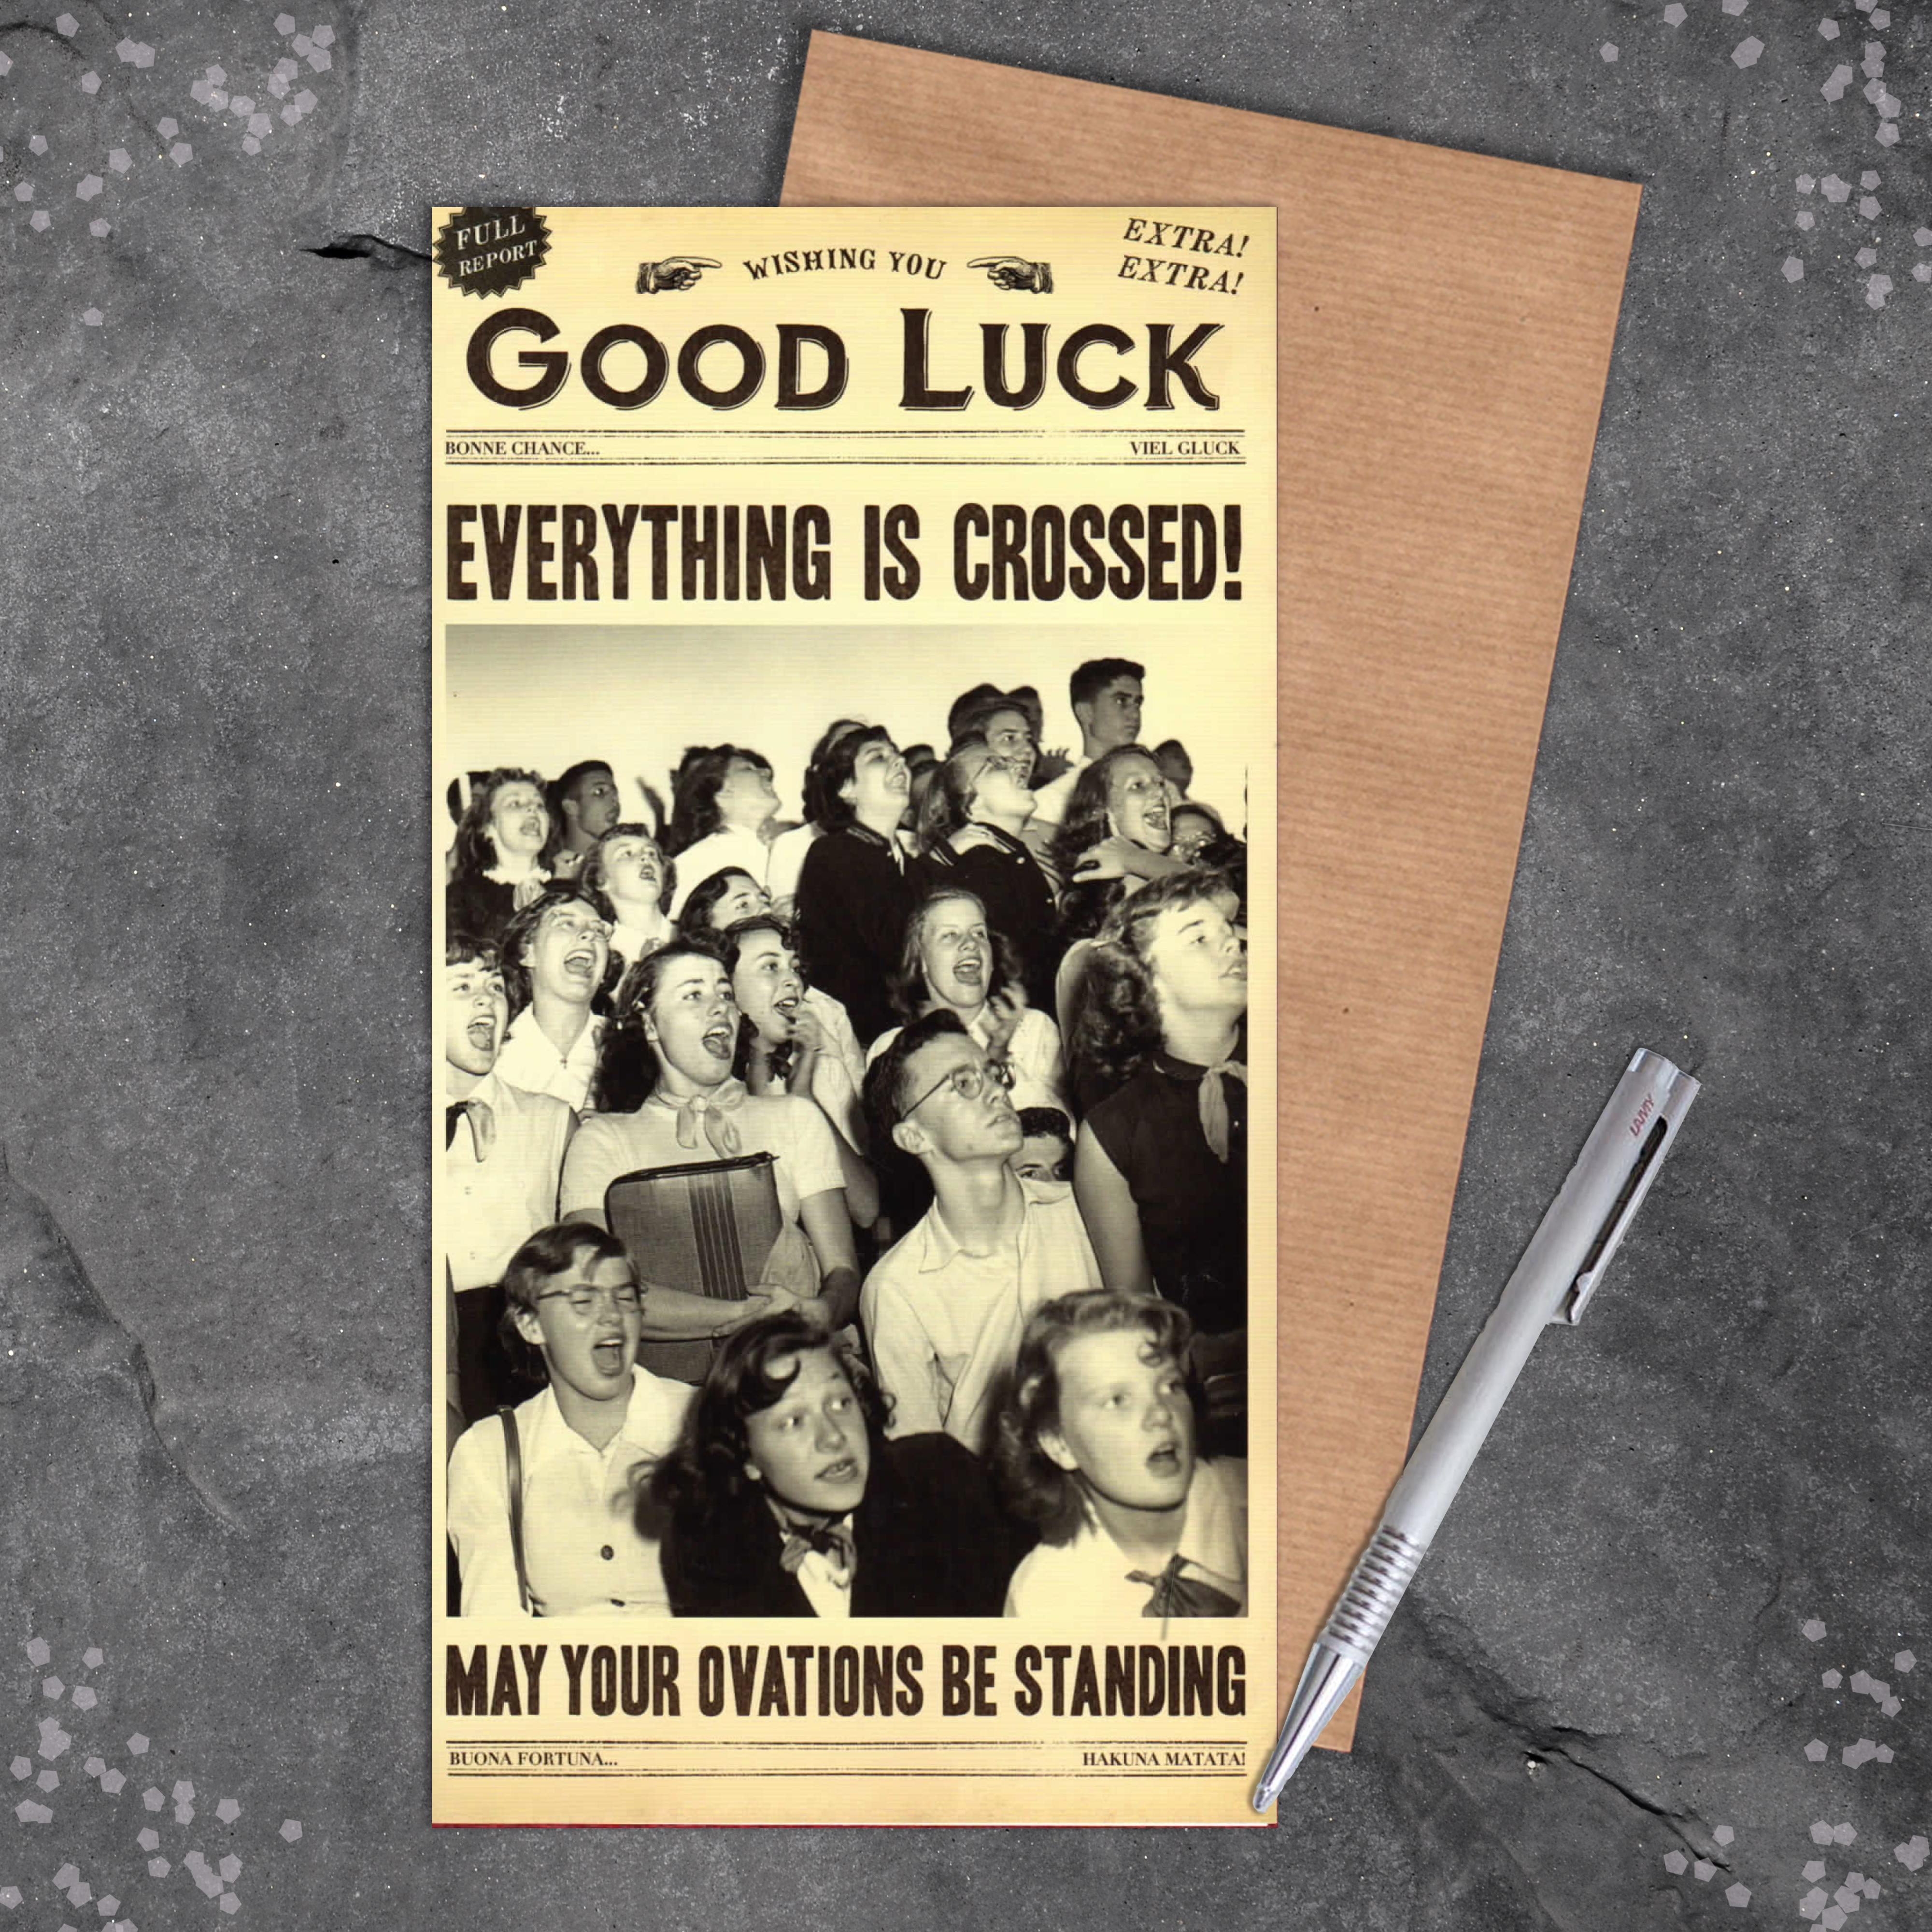 Humorous Good Luck Card Full Image